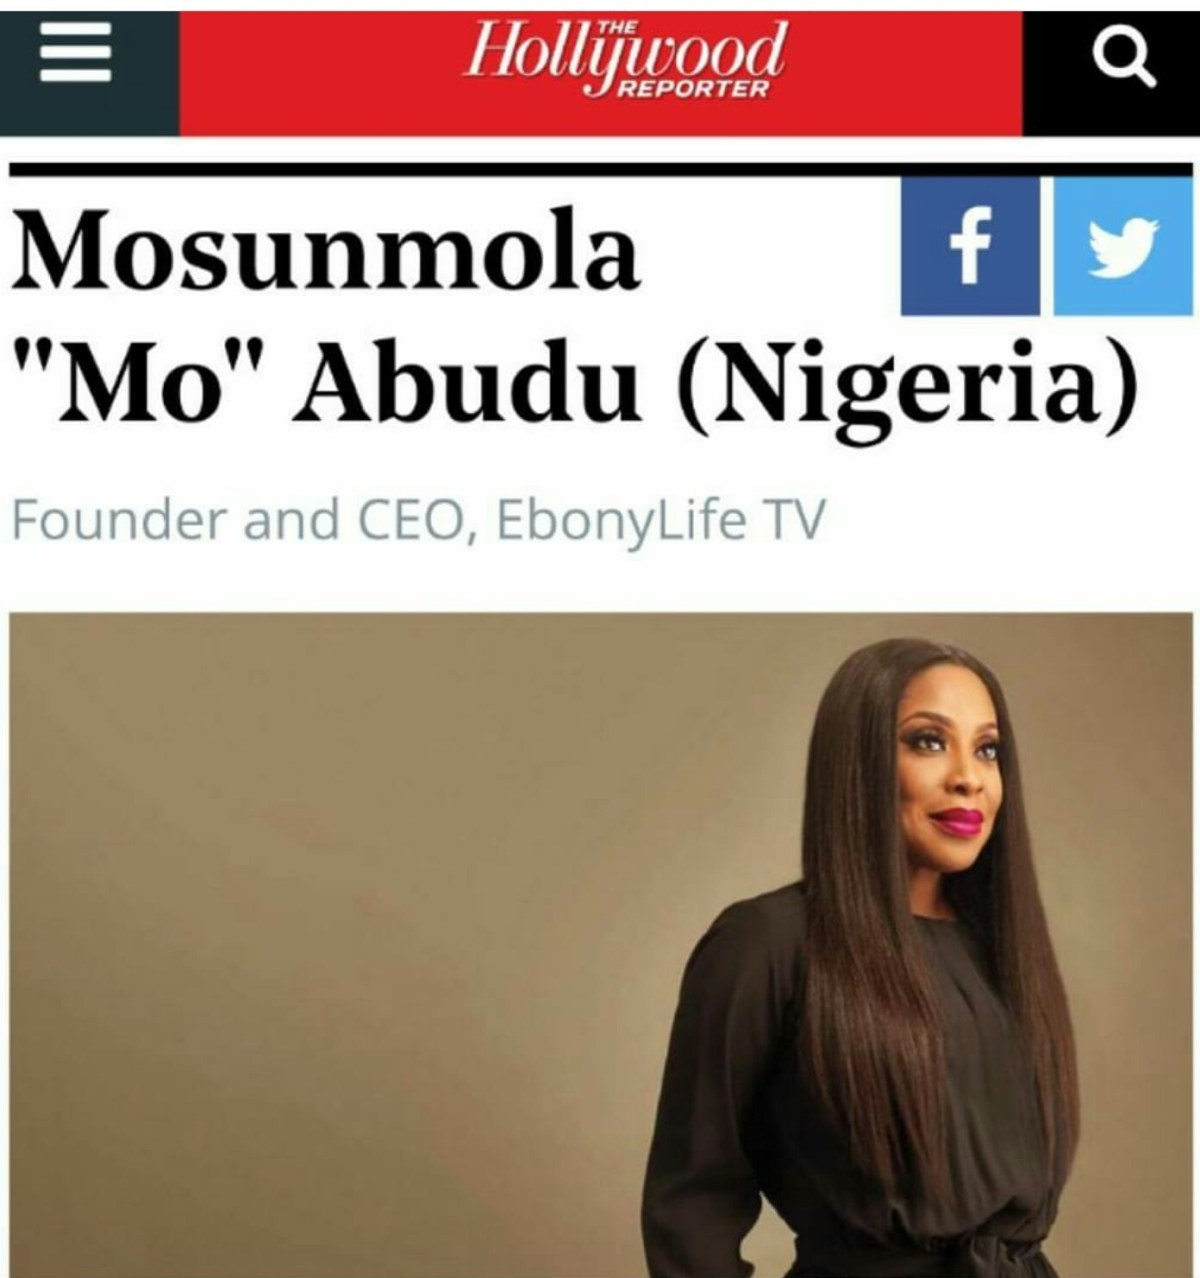 Mo Abudu named one of 25 most powerful women in global TV